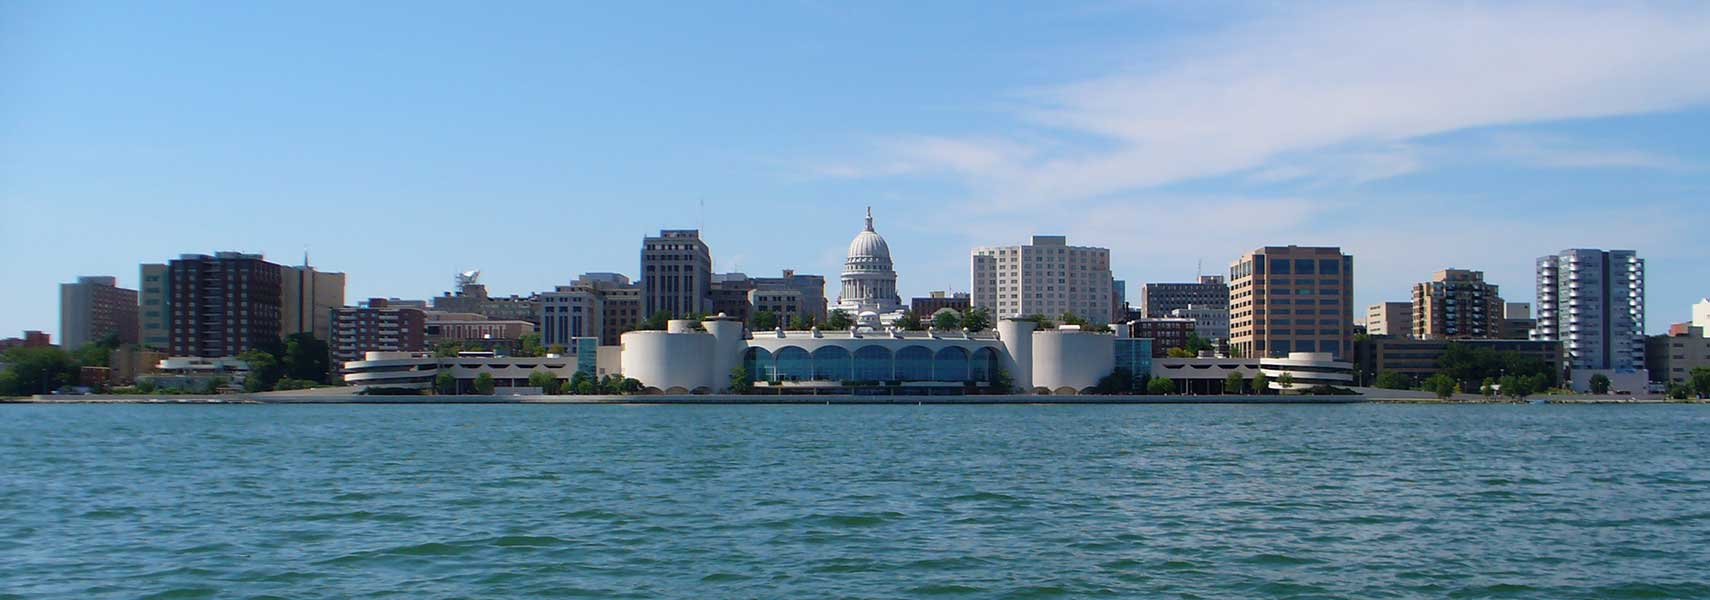 monona-terrace-madison